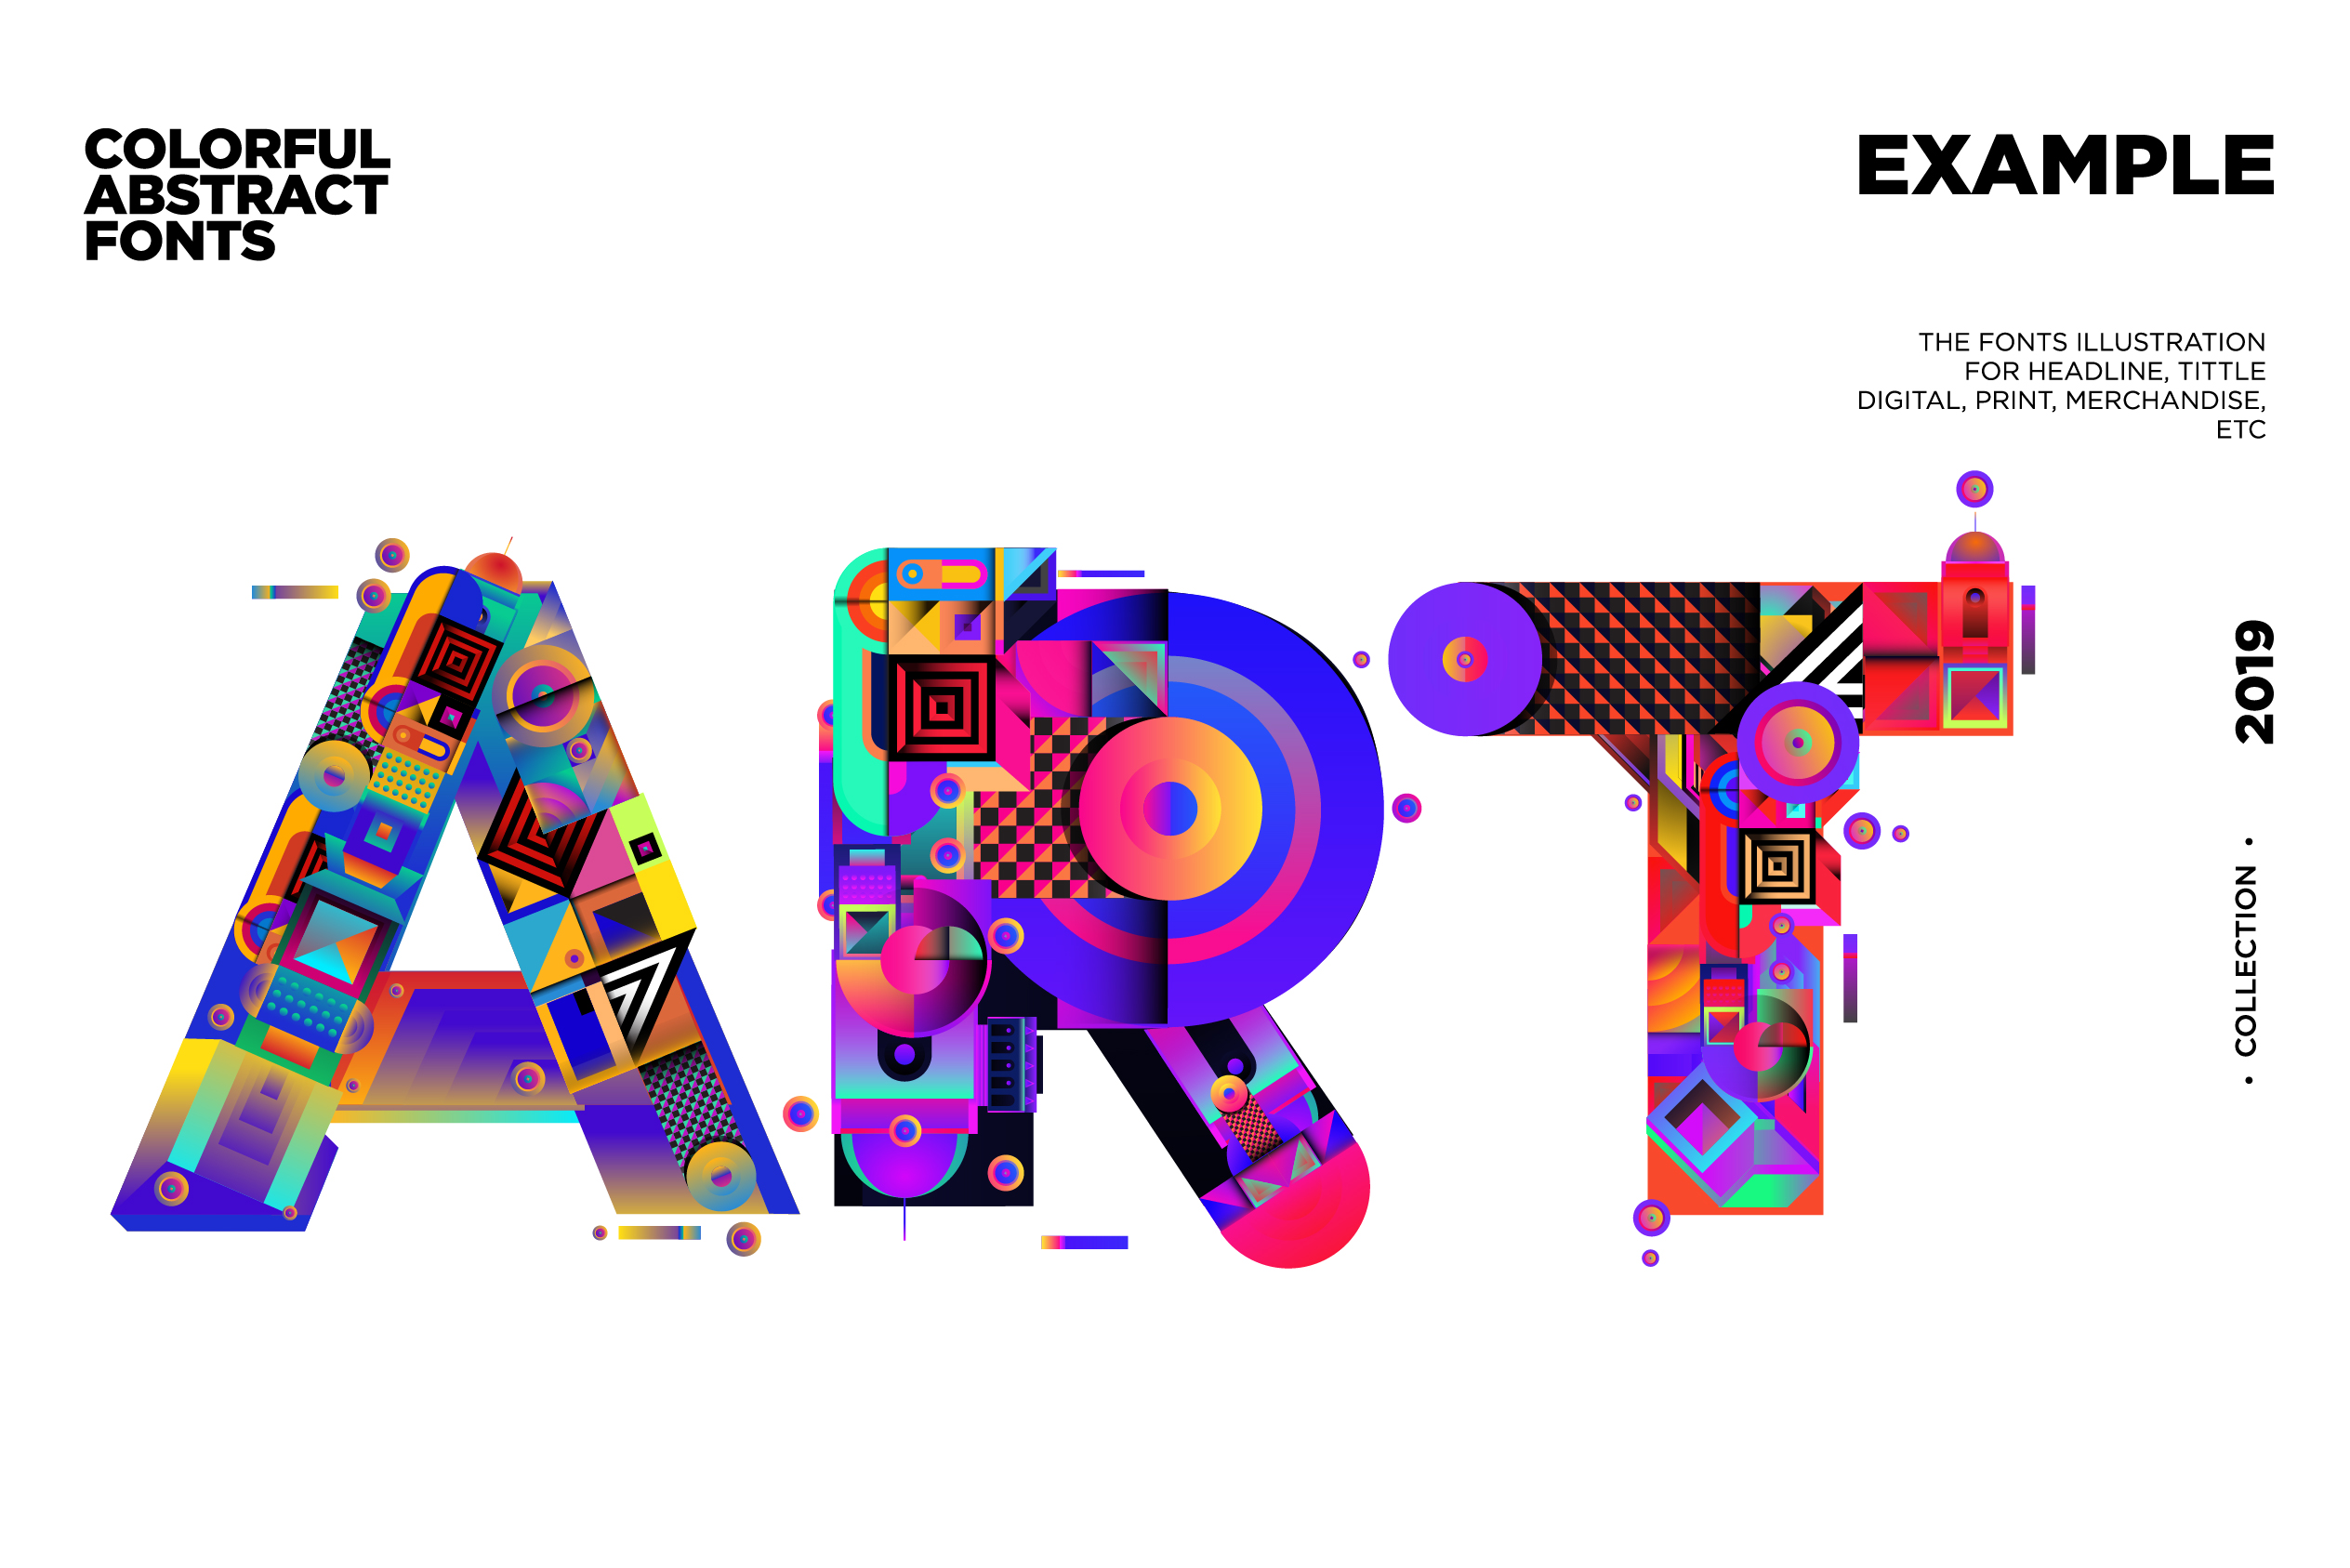 Colorful Alphabets Font Illustration example image 6